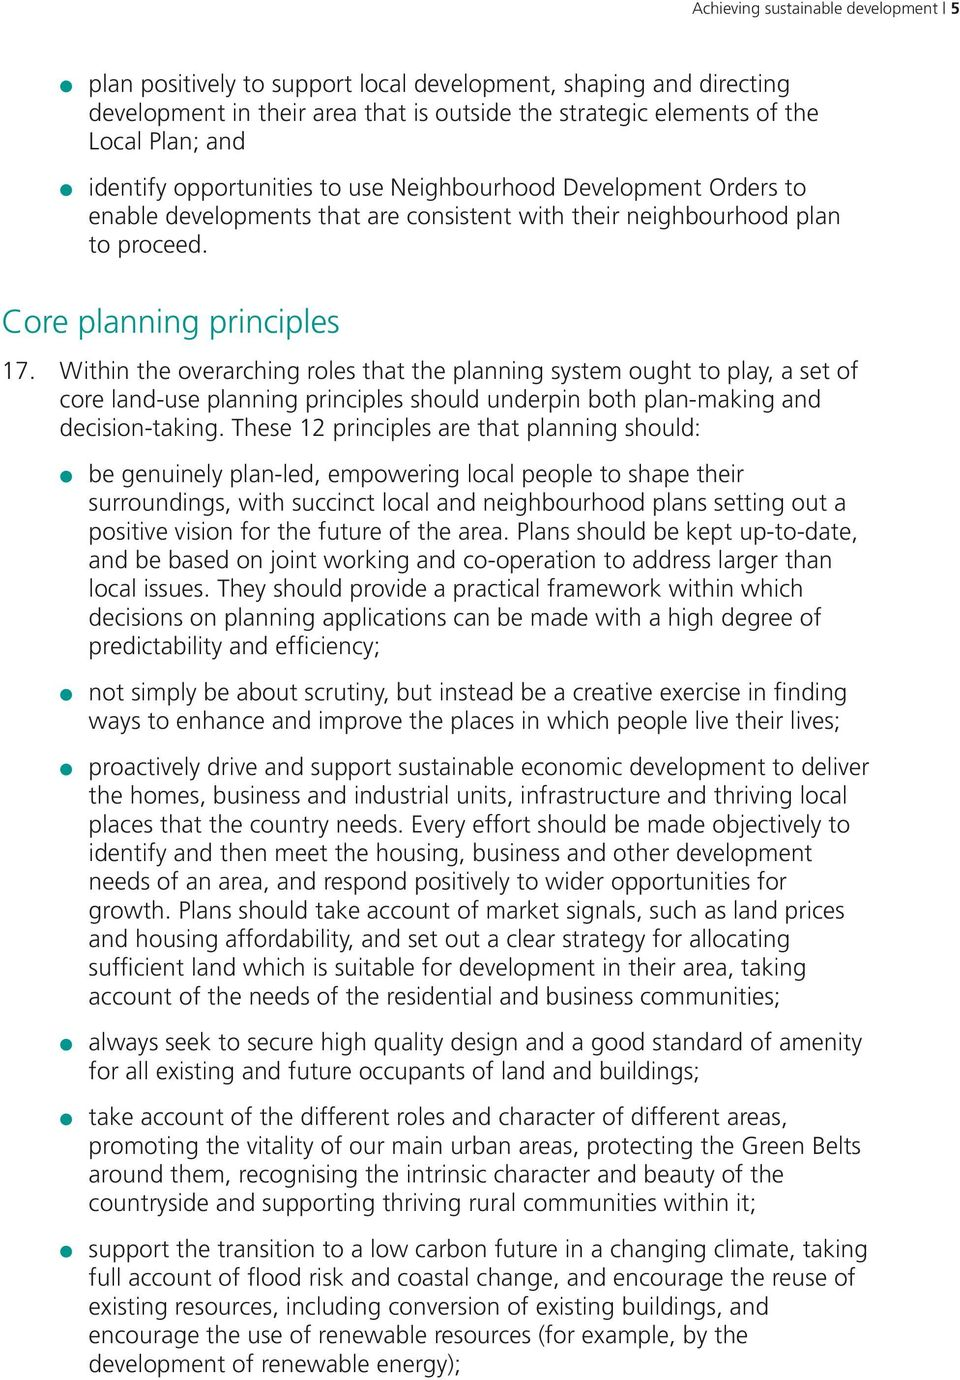 Within the overarching roles that the planning system ought to play, a set of core land-use planning principles should underpin both plan-making and decision-taking.